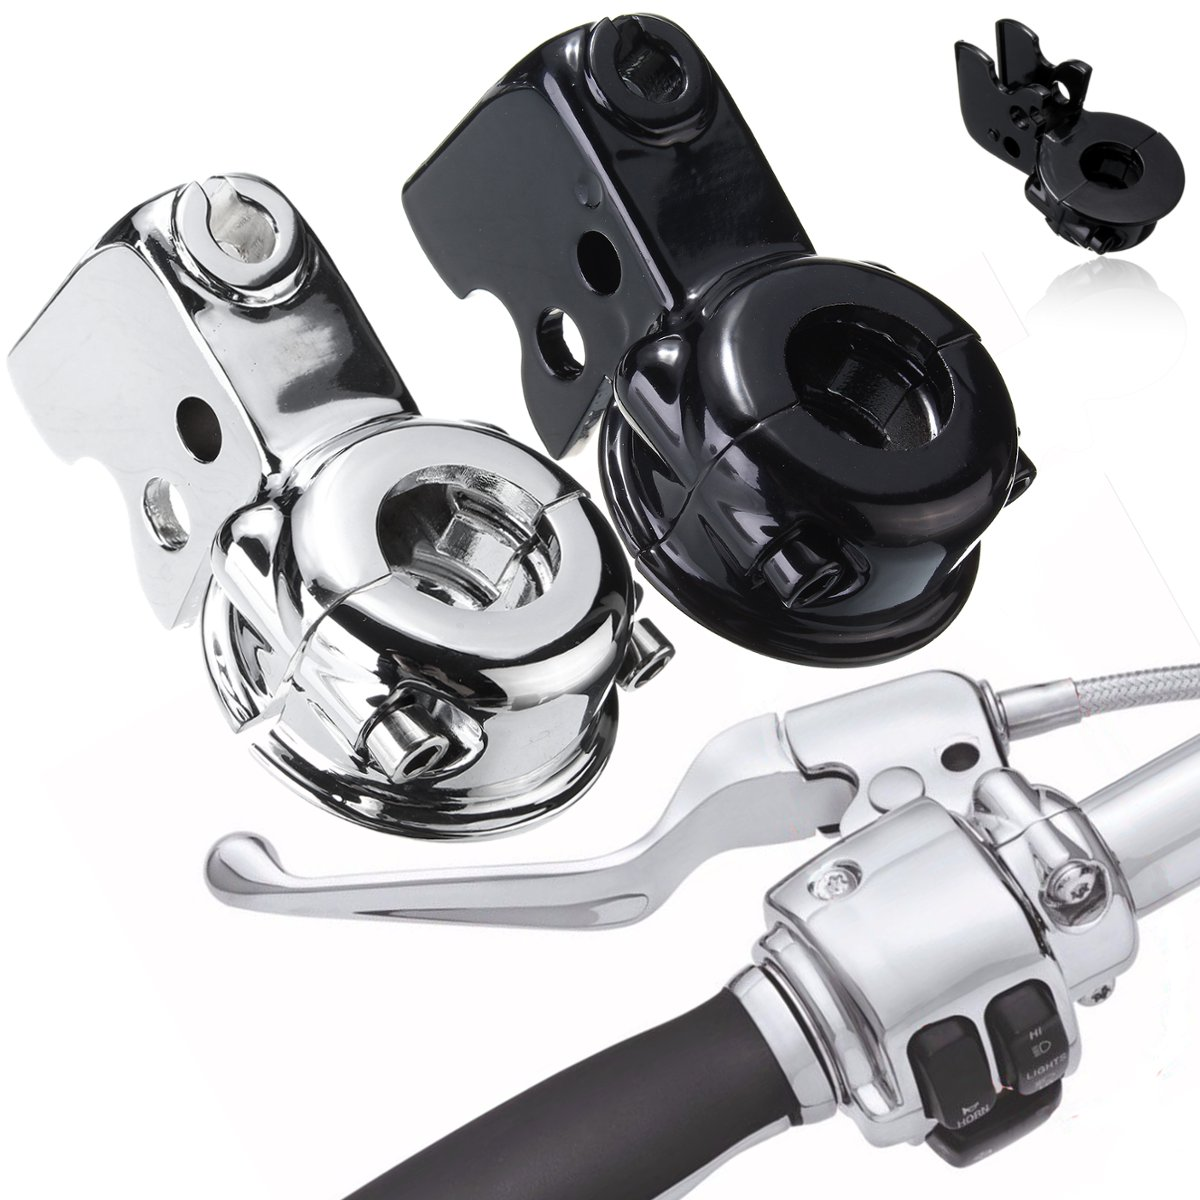 Motorcycle Clutch Lever Mount Bracket Perch For Harley Touring Glide Softail Dyna Sportster 883 Chrome Black triclicks saddlebag bracket support motorcycle saddle bag support bars mount brackets for harley sportster iron xl883n dyna fat